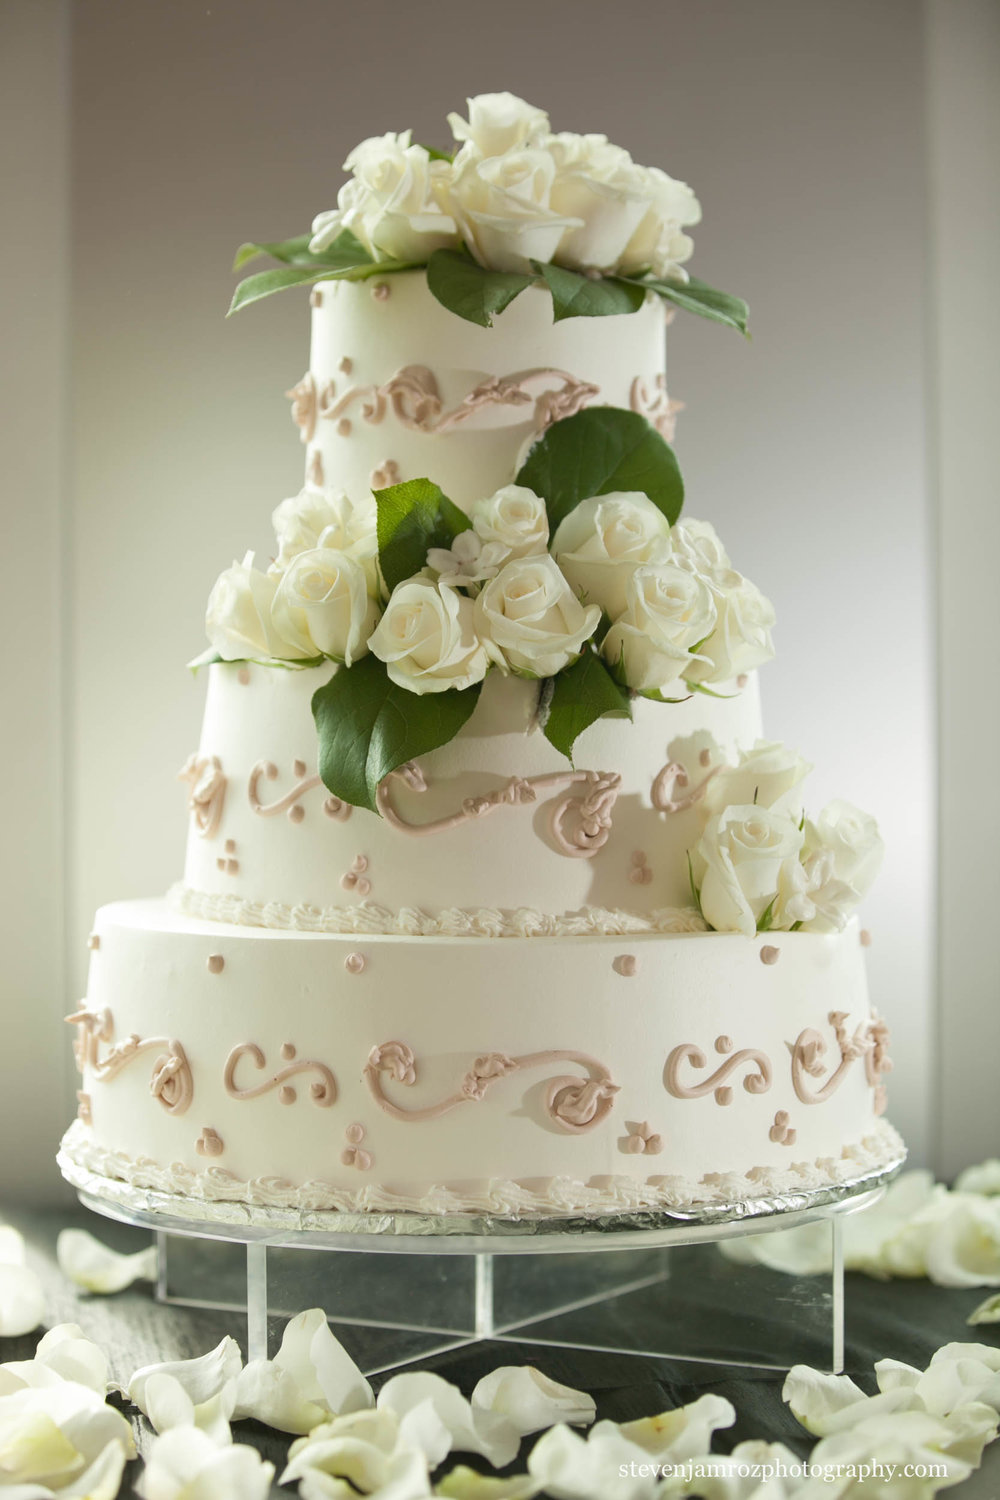 cake-wedding-pictures-raleigh-photographer-0893.jpg